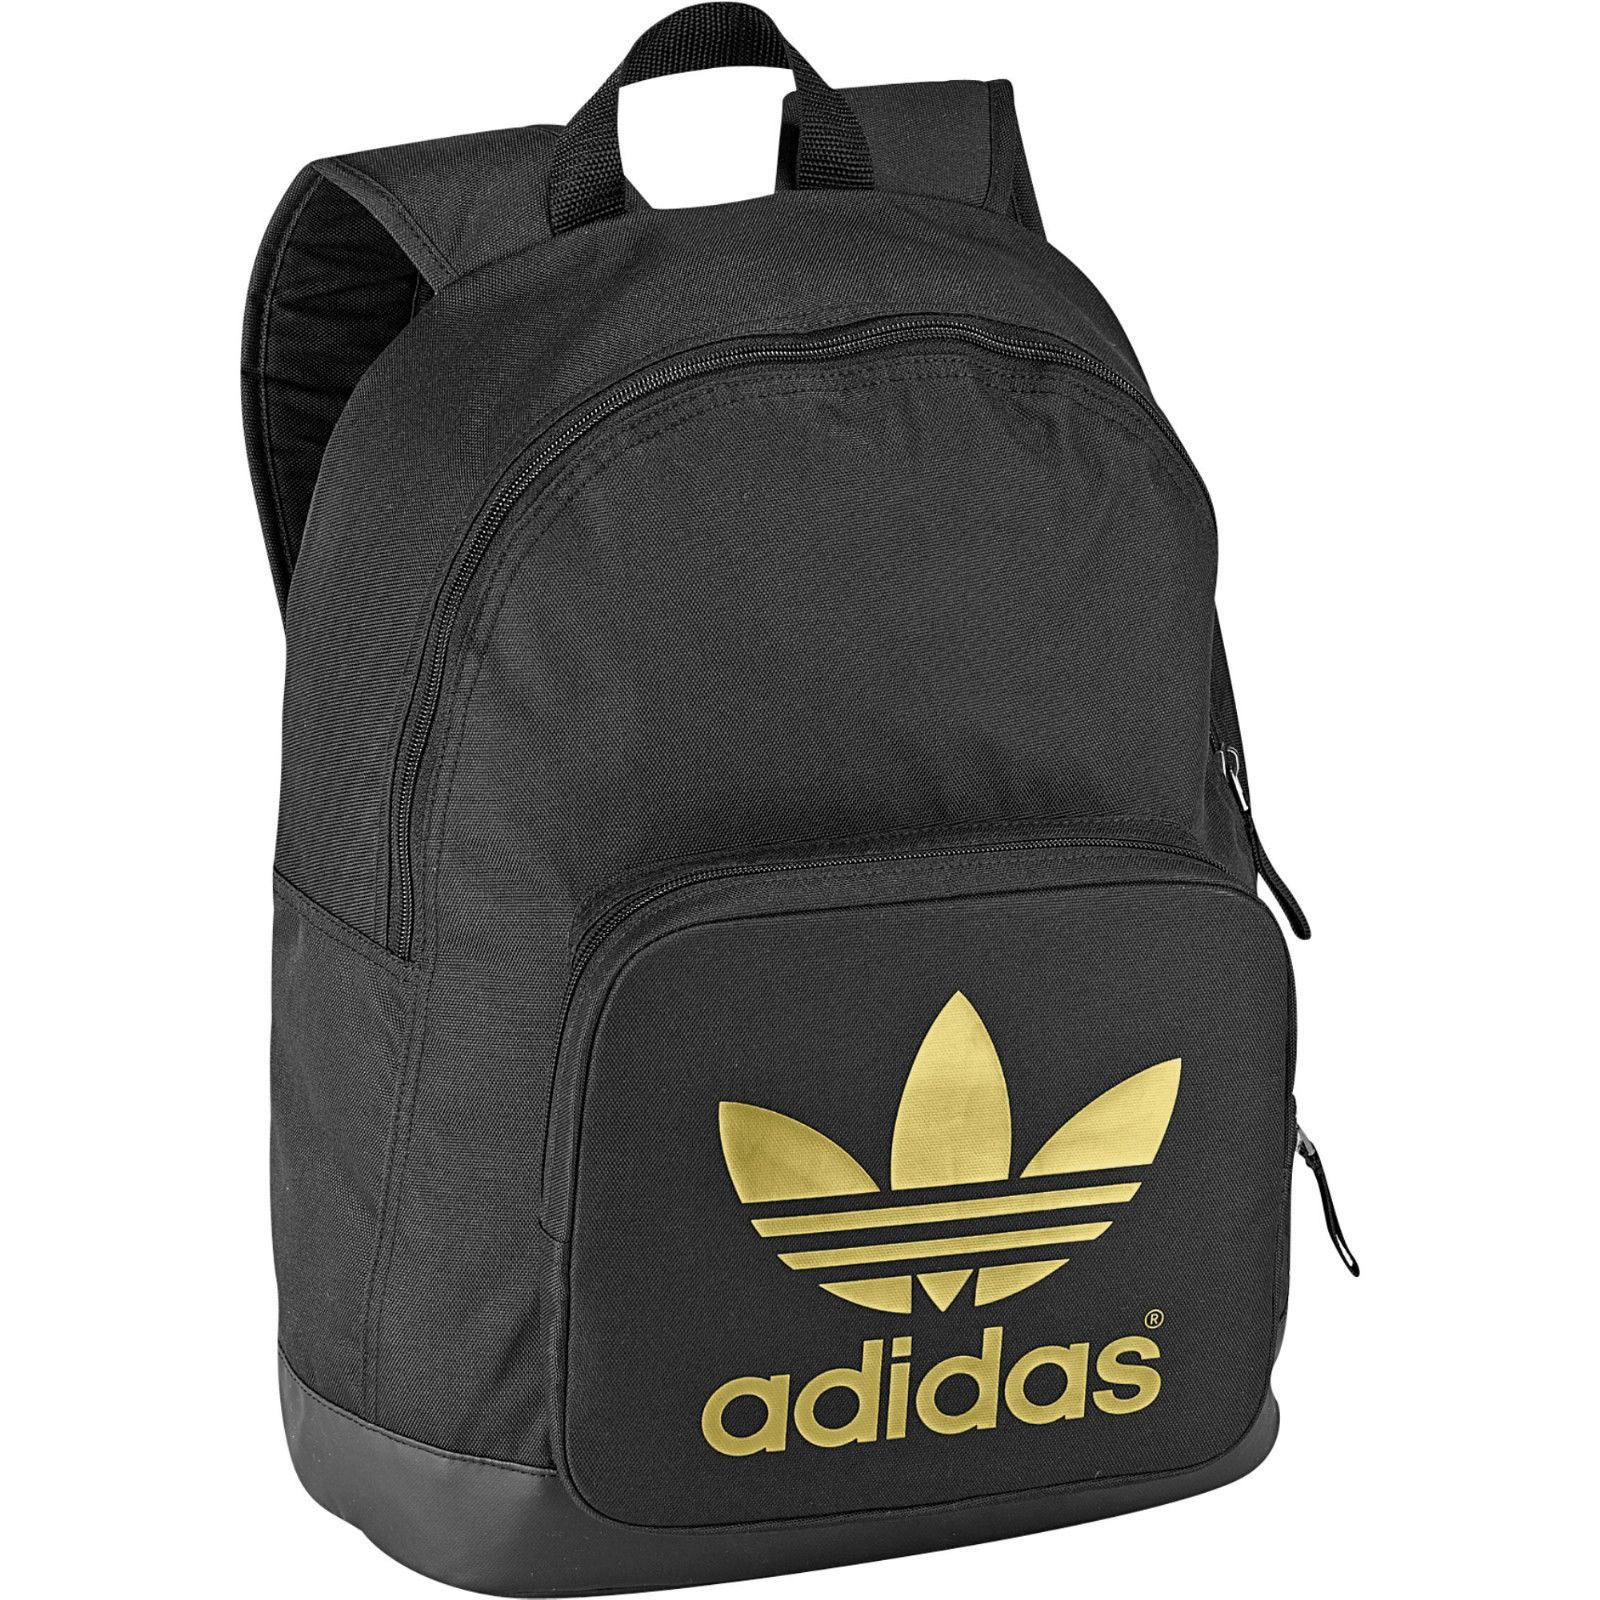 Adidas Originals Backpacks Mens Boys Girls Adidas School Backbags Rucksacks   a4ae62fe146ae